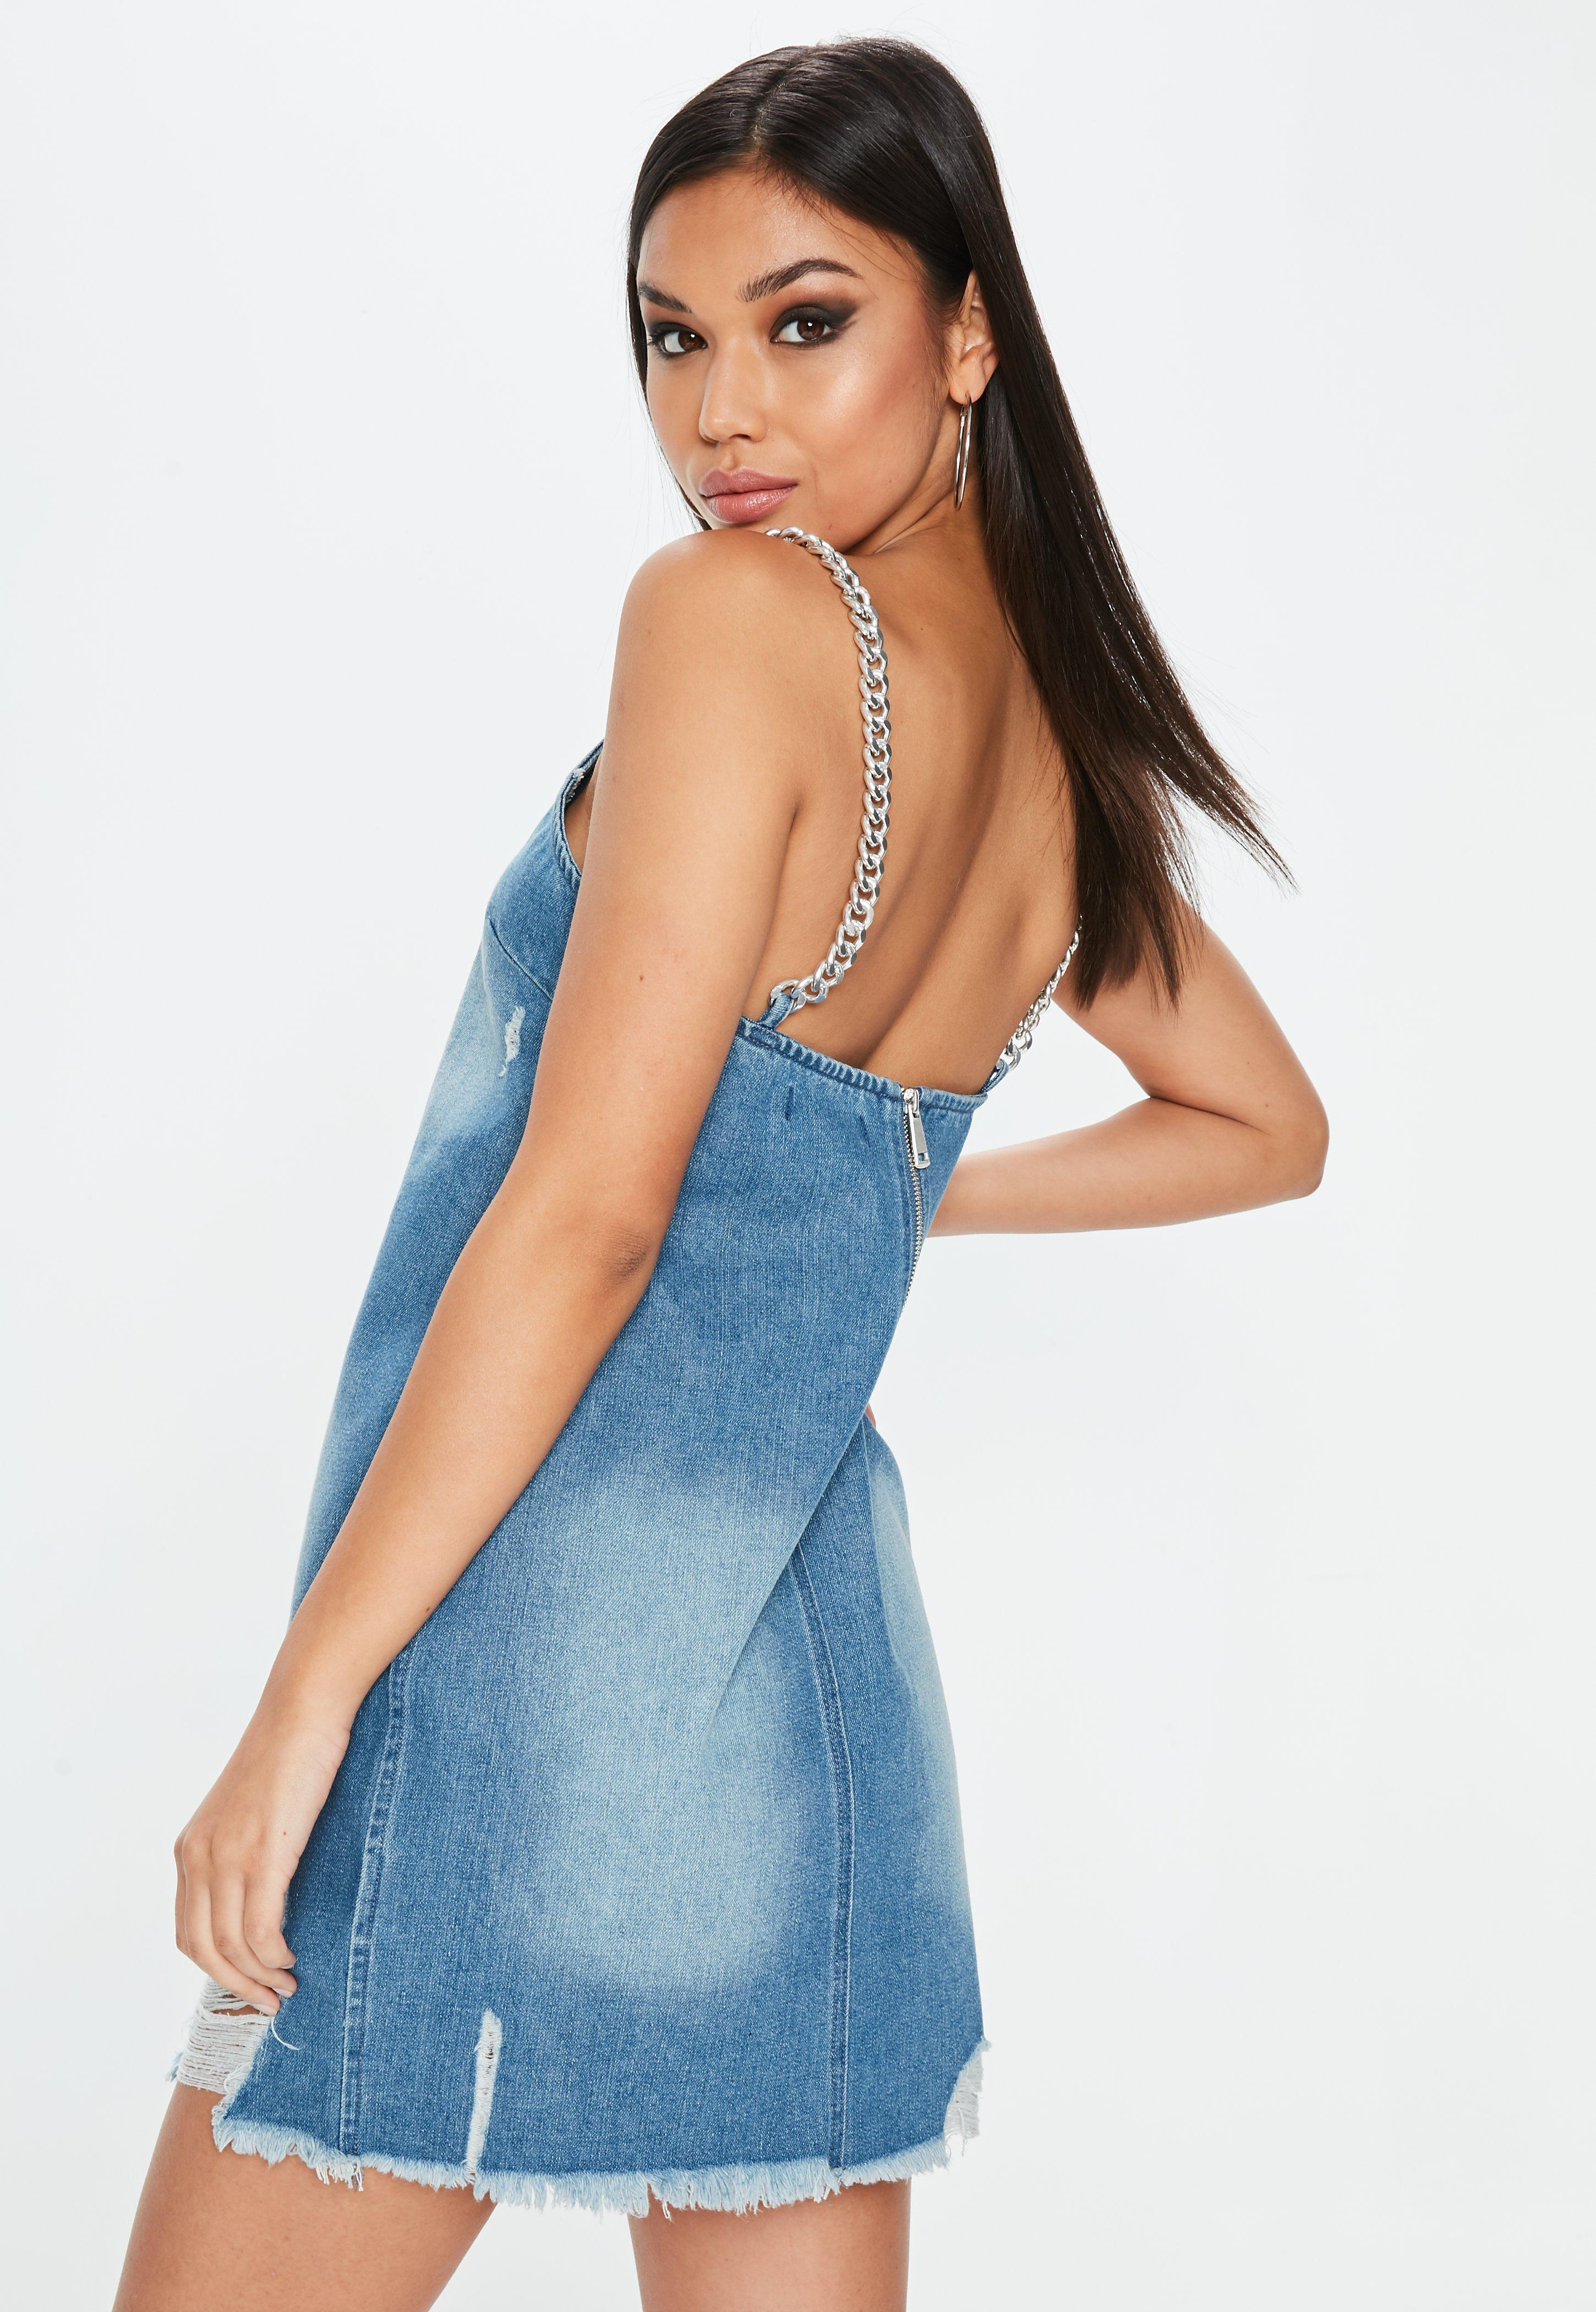 ee9e09a3d0 Missguided Blue Denim Chain Strap Frayed Hem Cami Dress in Blue - Lyst